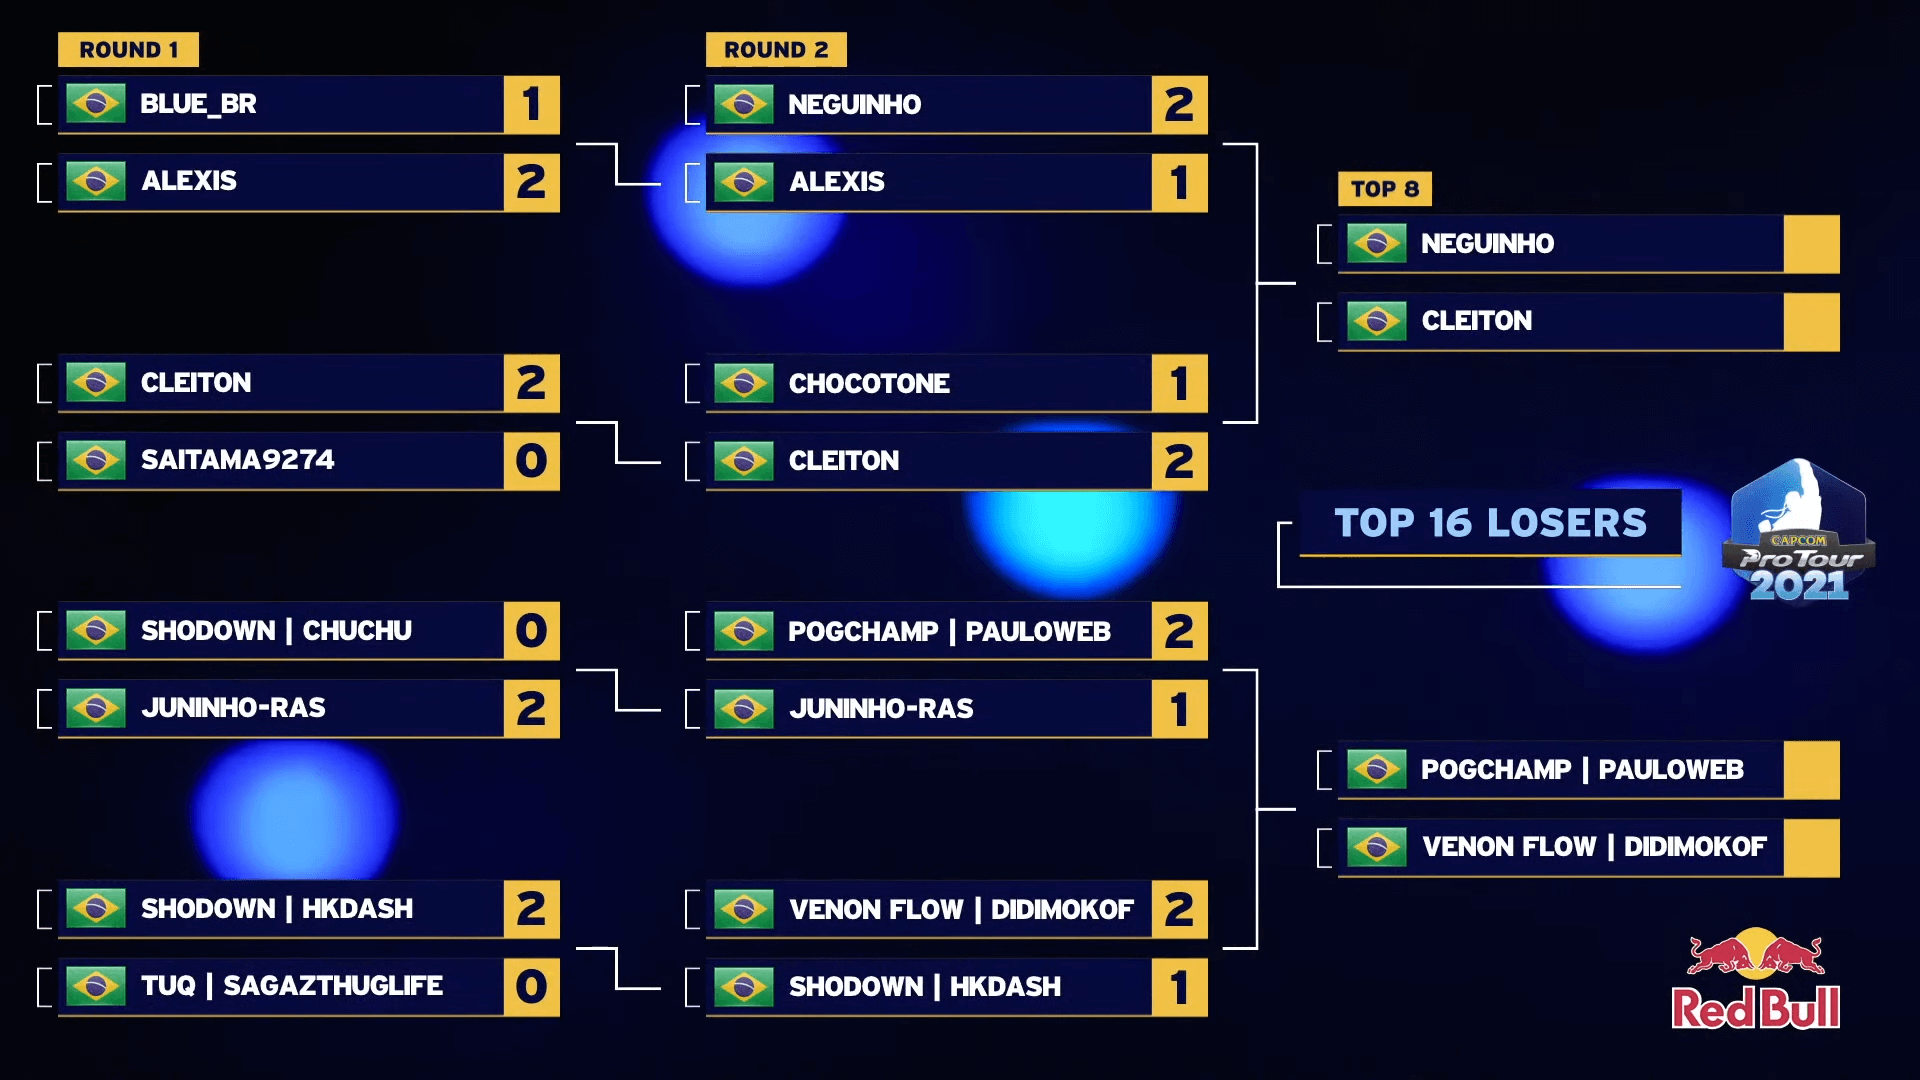 CPT 2021 Brazil 1 - Top 16 Losers Brackets